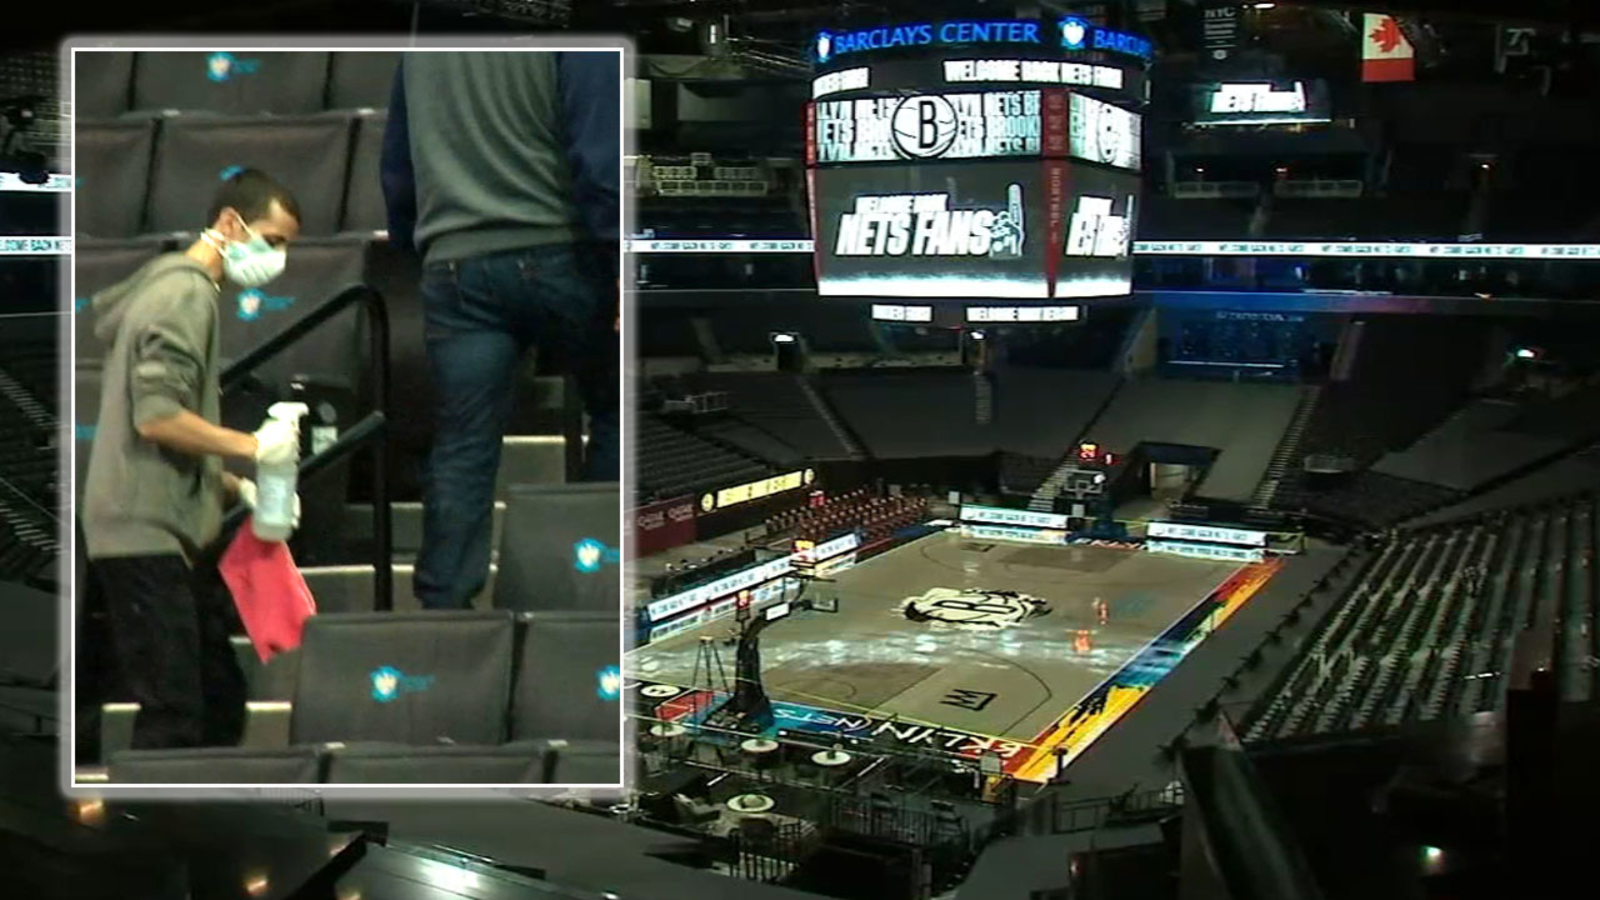 Coronavirus Update New York City: Barclays Center welcoming Nets fans inside for the first time in nearly a year